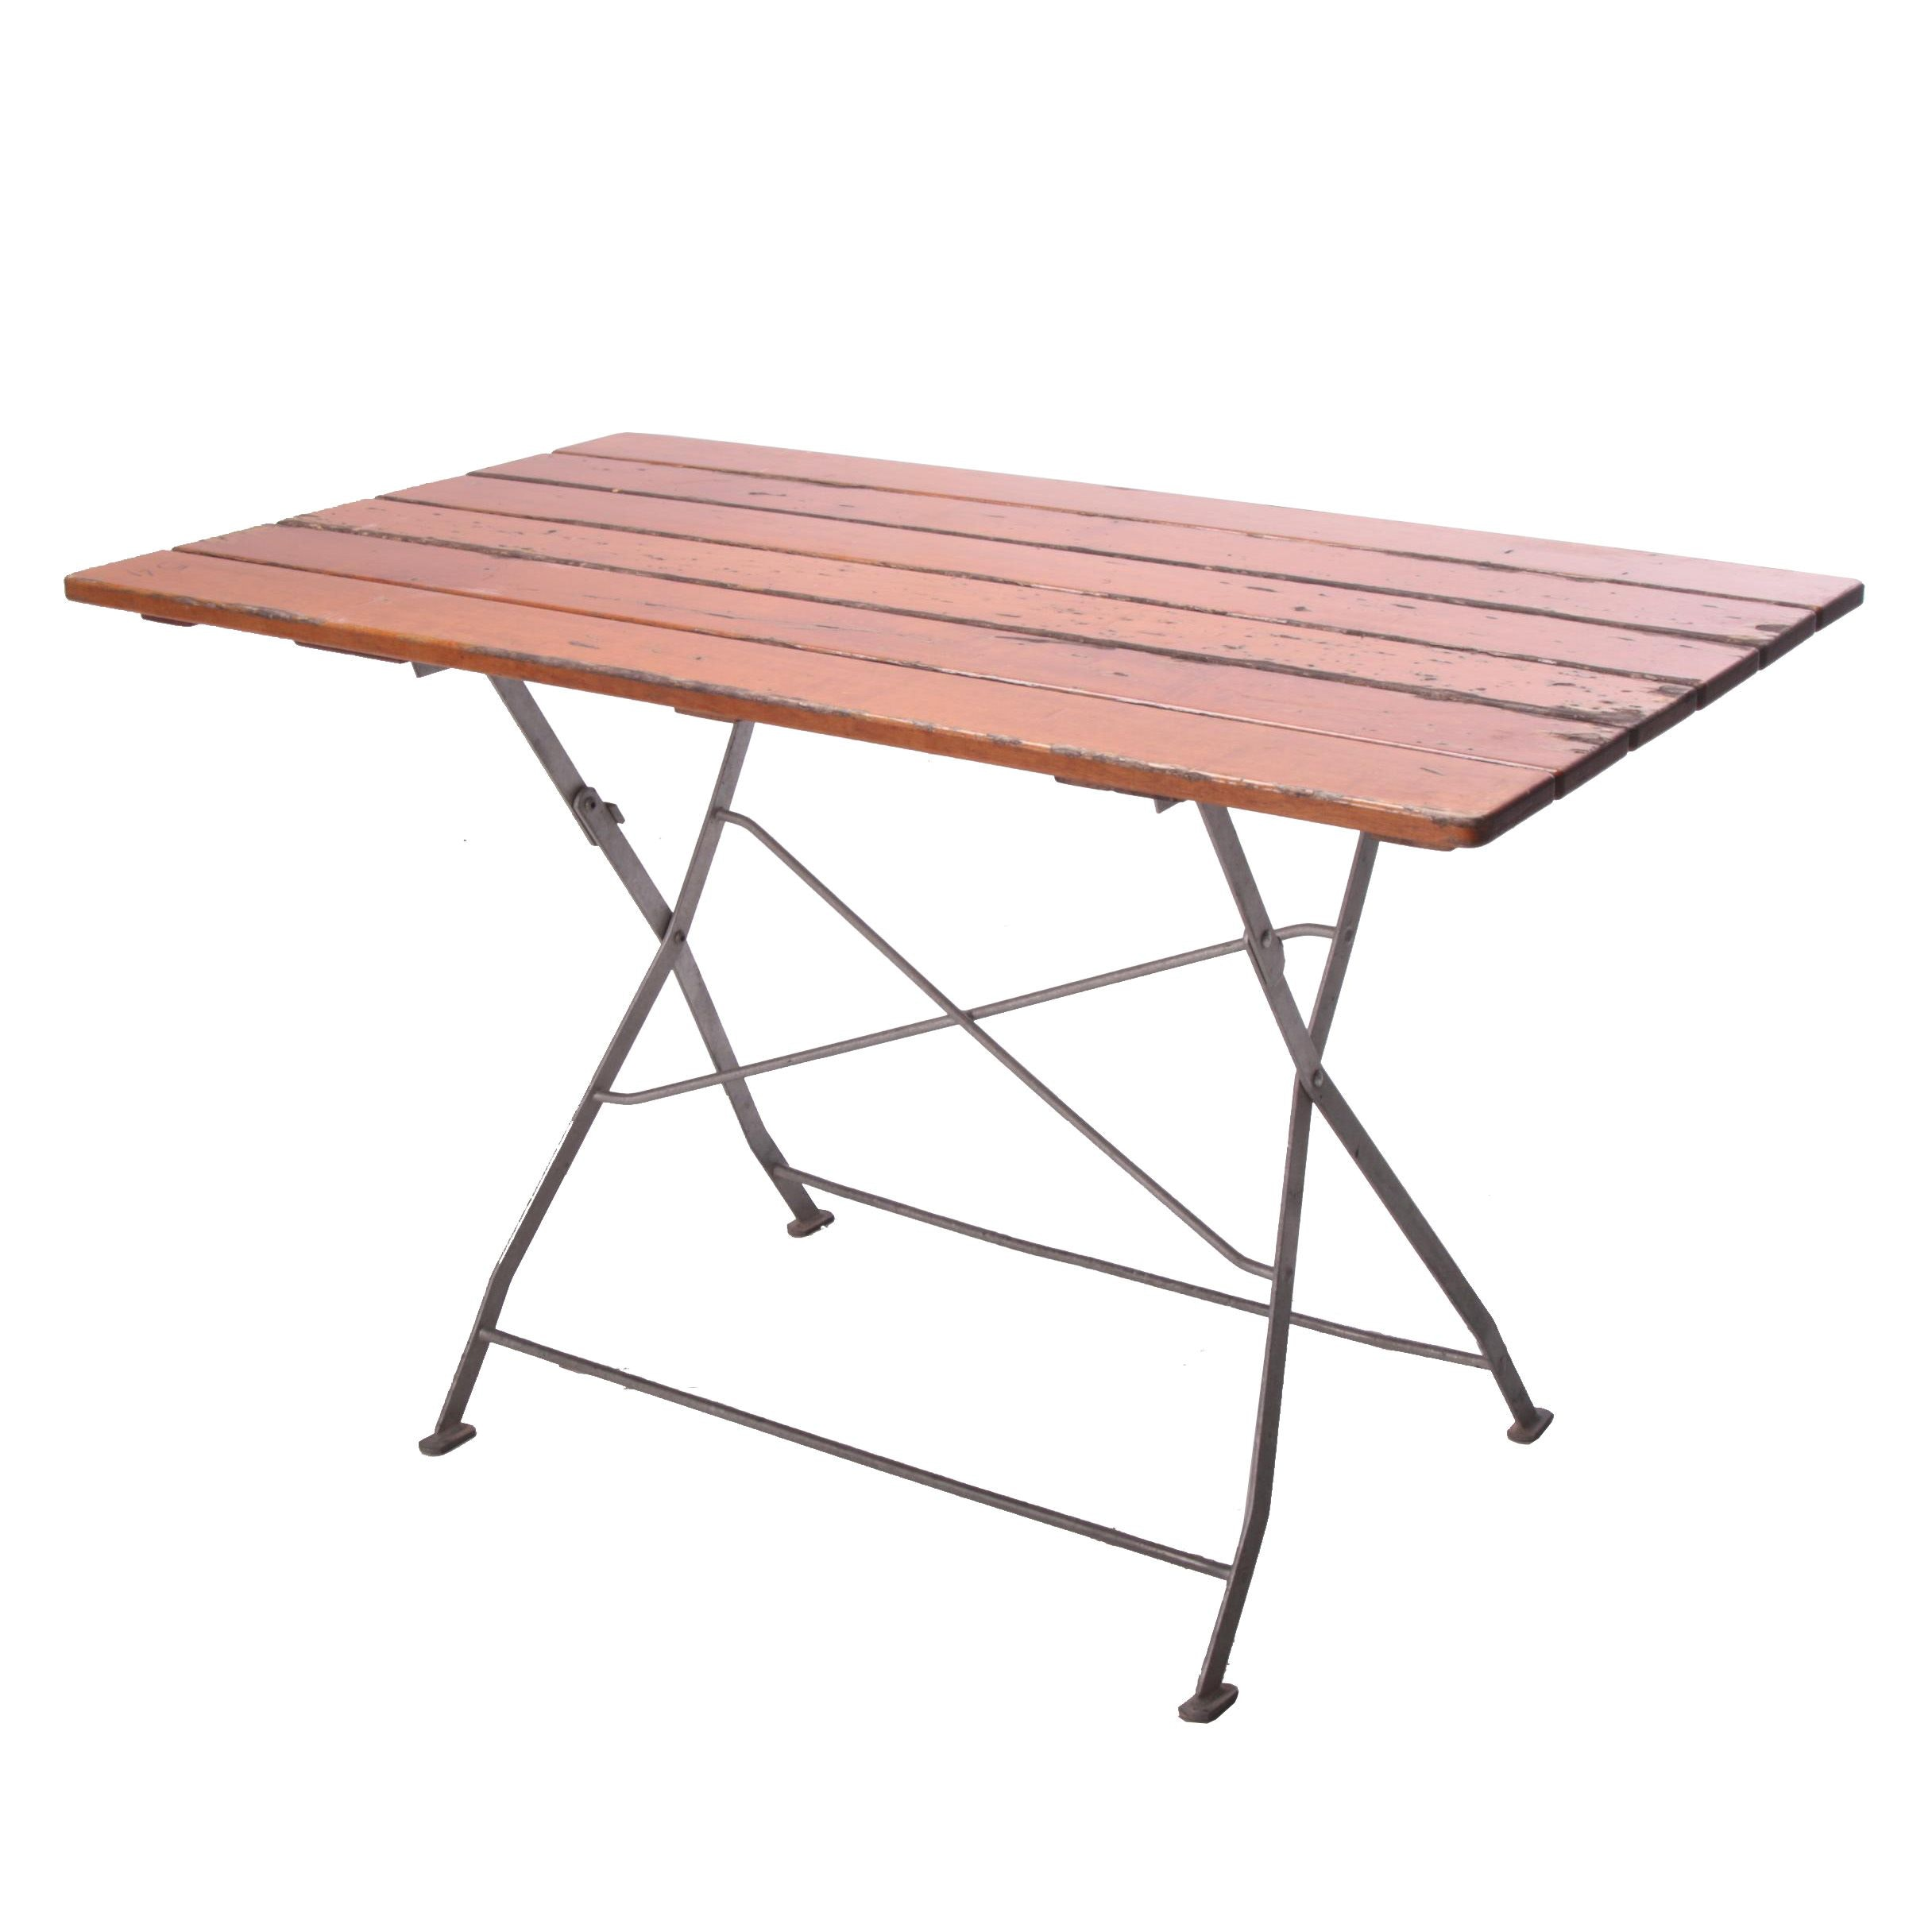 Teak and Metal Folding Beirgarten Table, Late 20th Century